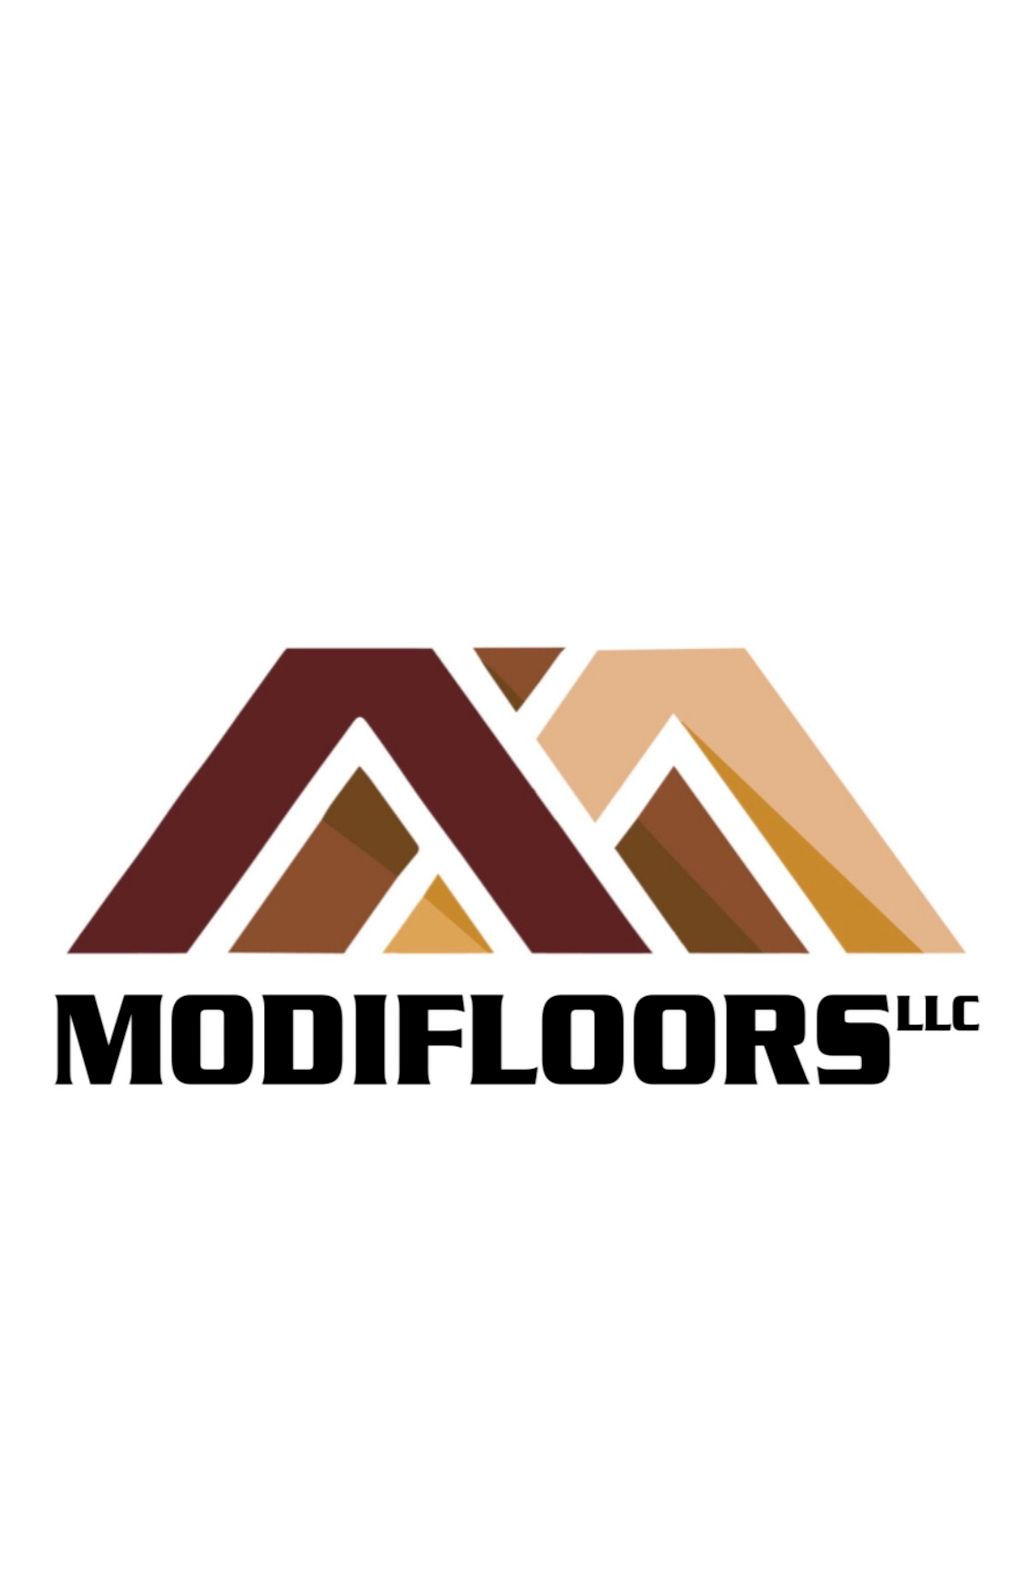 ModiFloors LLC